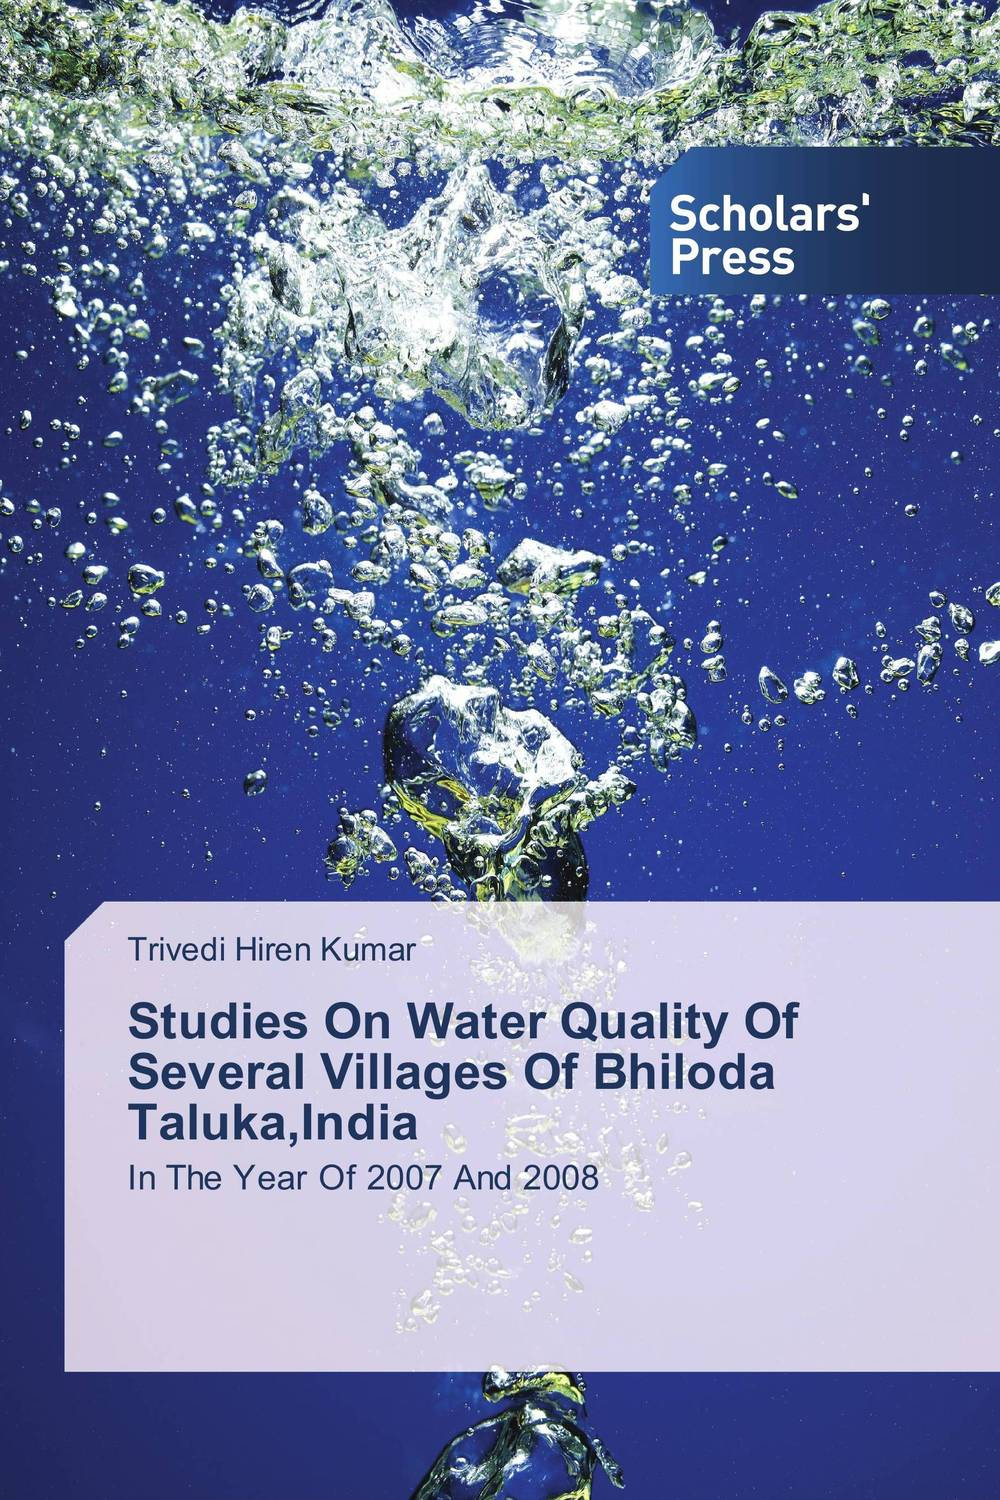 Studies On Water Quality Of Several Villages Of Bhiloda Taluka,India surface and ground water interaction